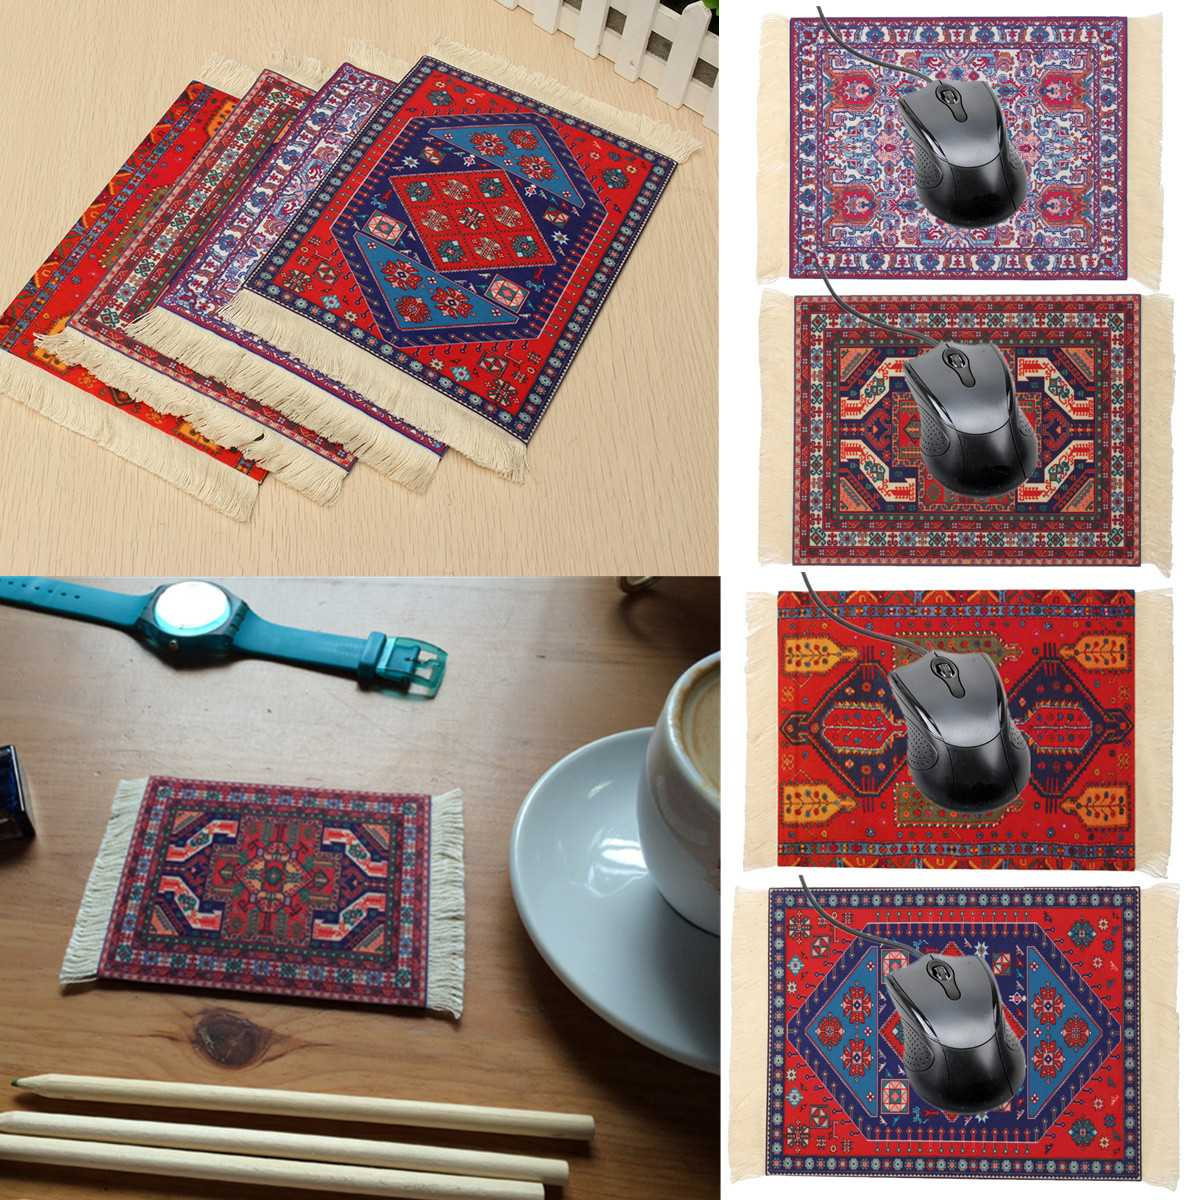 27x18cm Persian Mini Woven Rug Mat Mousepad Retro Style Carpet Pattern Cup Mouse Pad With Fringe Home Office Table Decor Craft